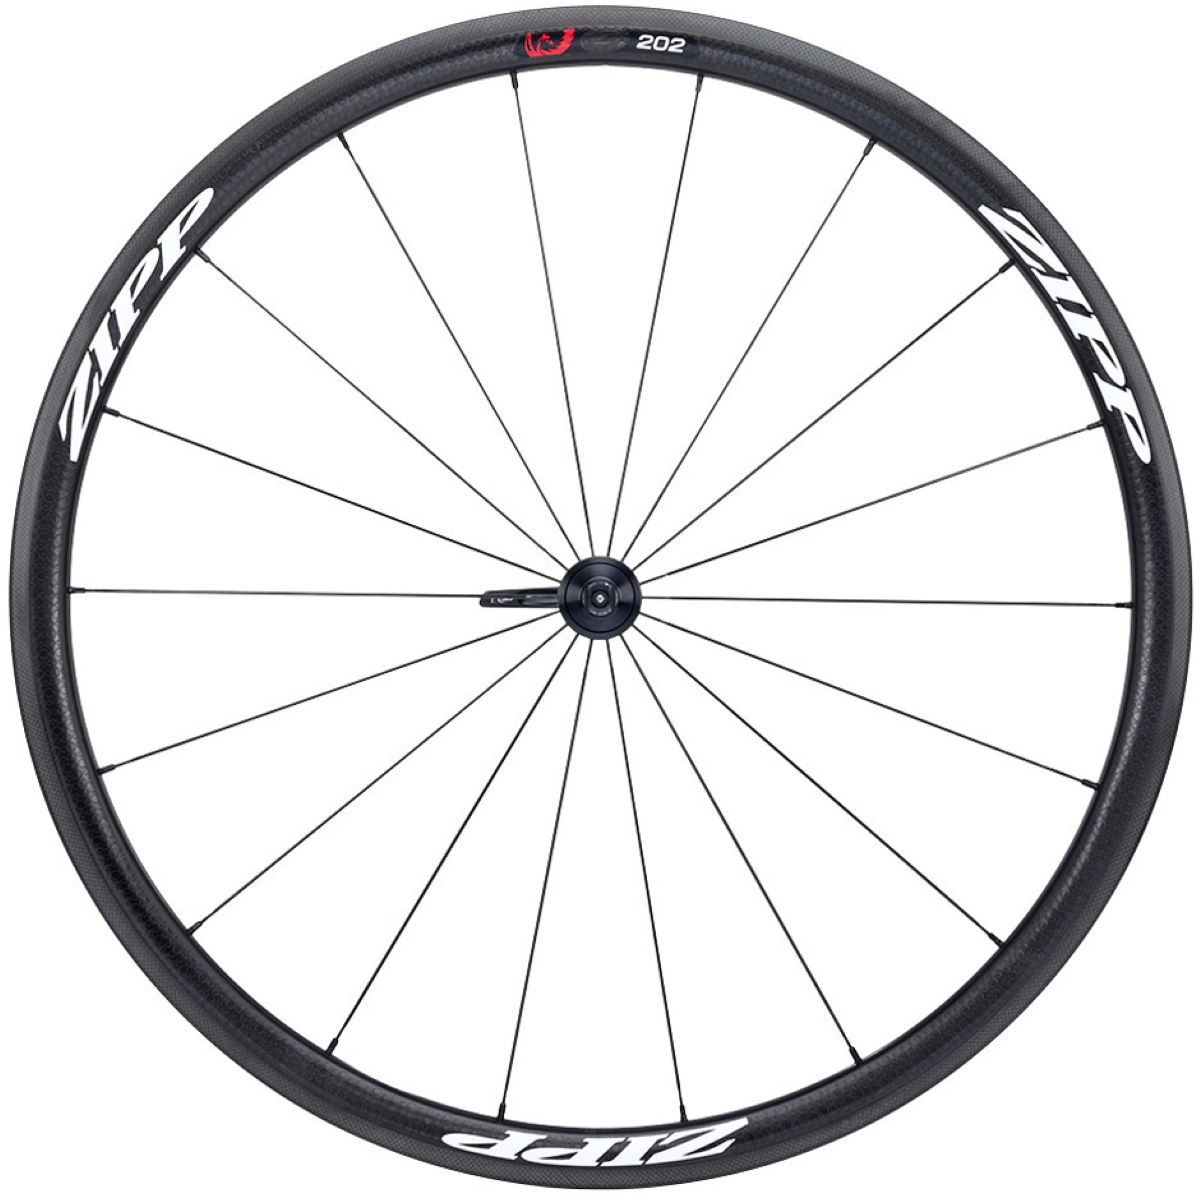 Roue avant Zipp 202 Firecrest (carbone, tringle) - 700c - Clincher Noir/Blanc Roues performance